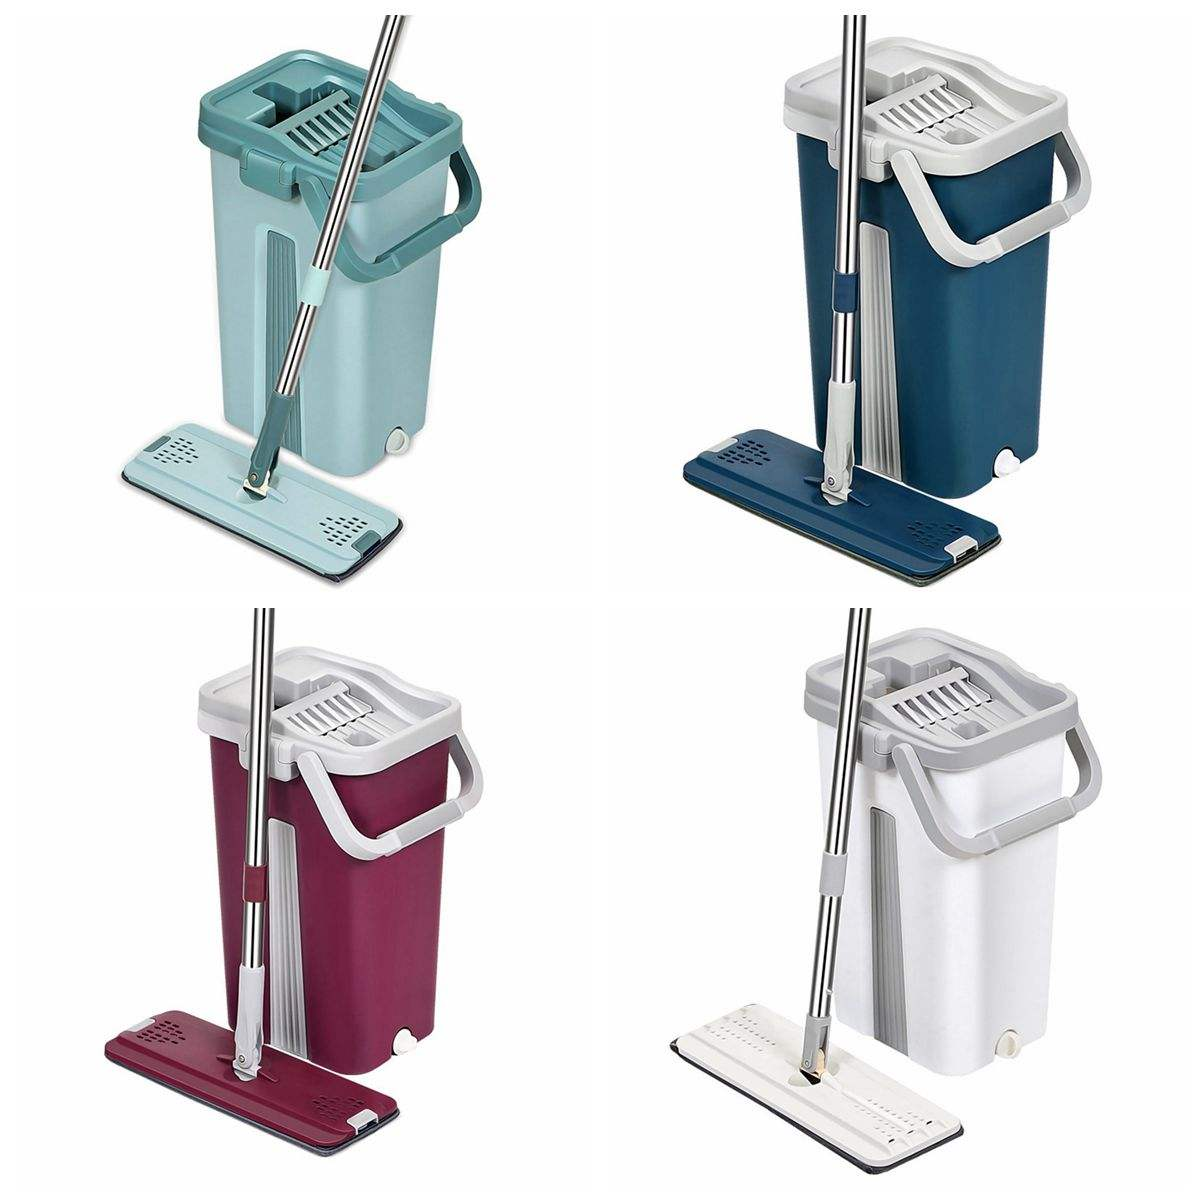 2020 Flat Mop and Bucket Hand Free Washing Floor Cleaning Mop Wet & Dry Usage